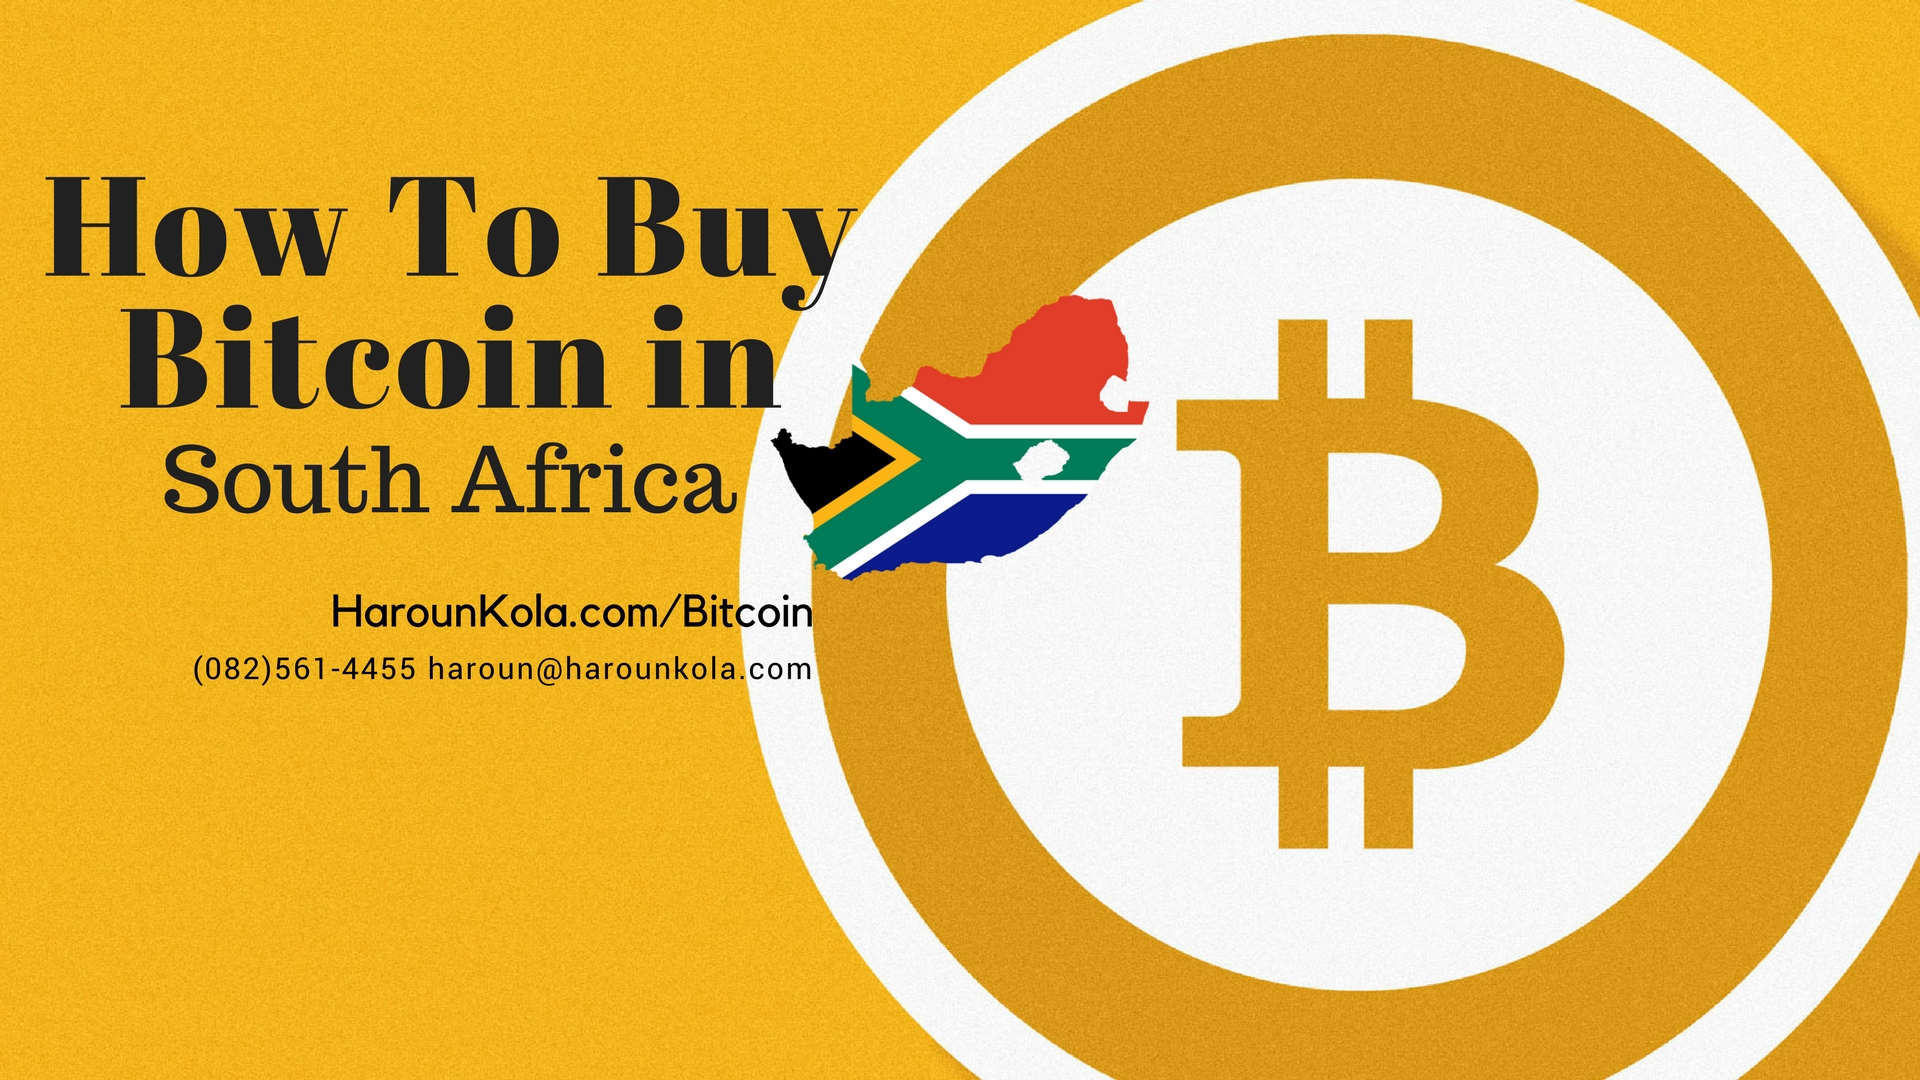 Buy bitcoins in south africa crypto currency reddit videos